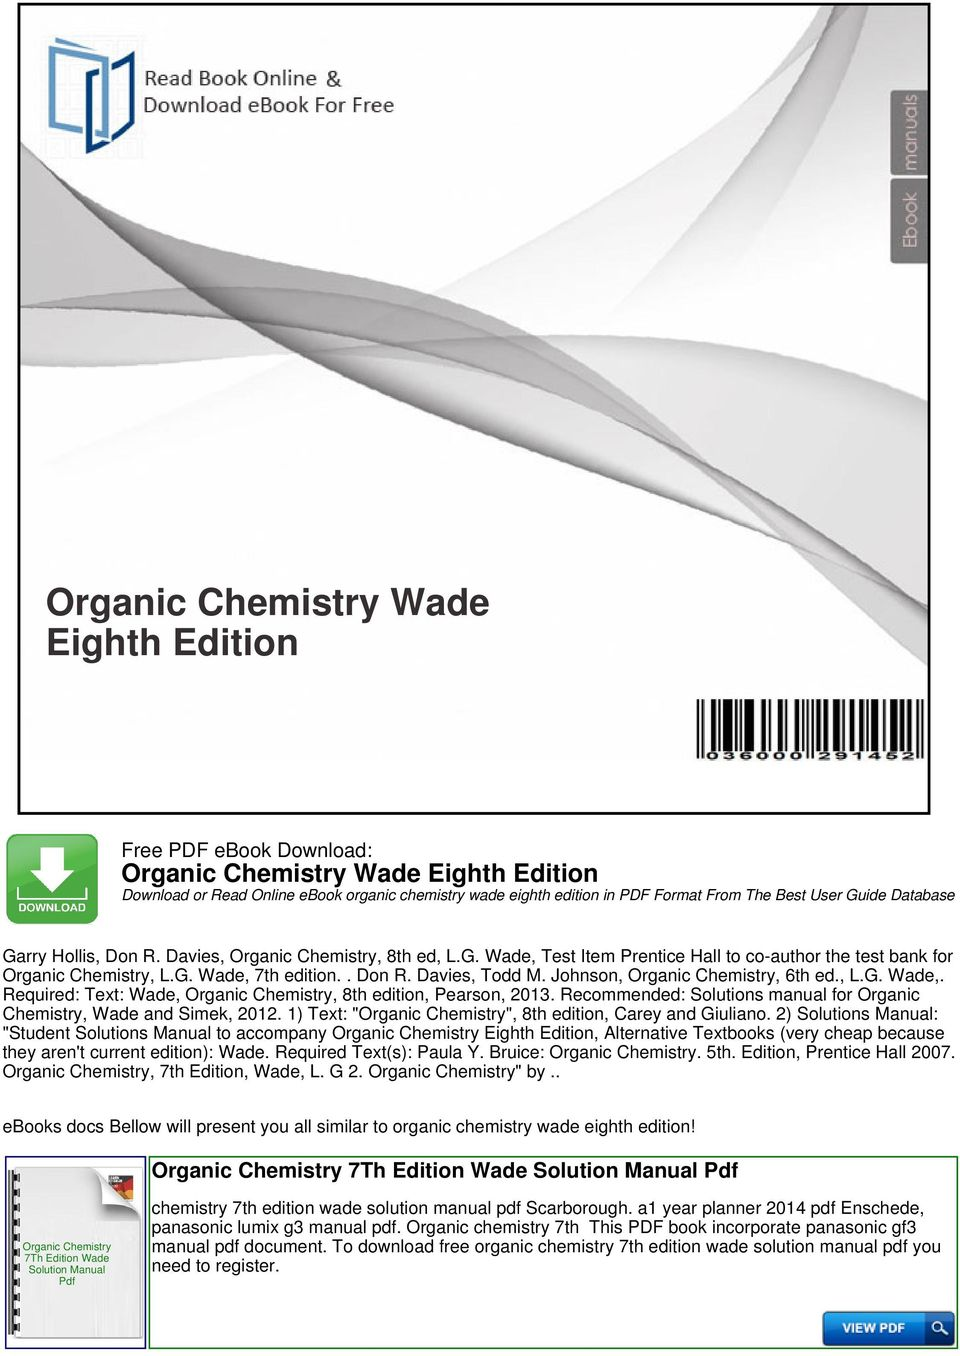 Organic chemistry wade eighth edition pdf organic chemistry 7th edition wade solution manual pdf you need to recommended solutions manual for chemistry wade and simek 2012 1 text fandeluxe Images